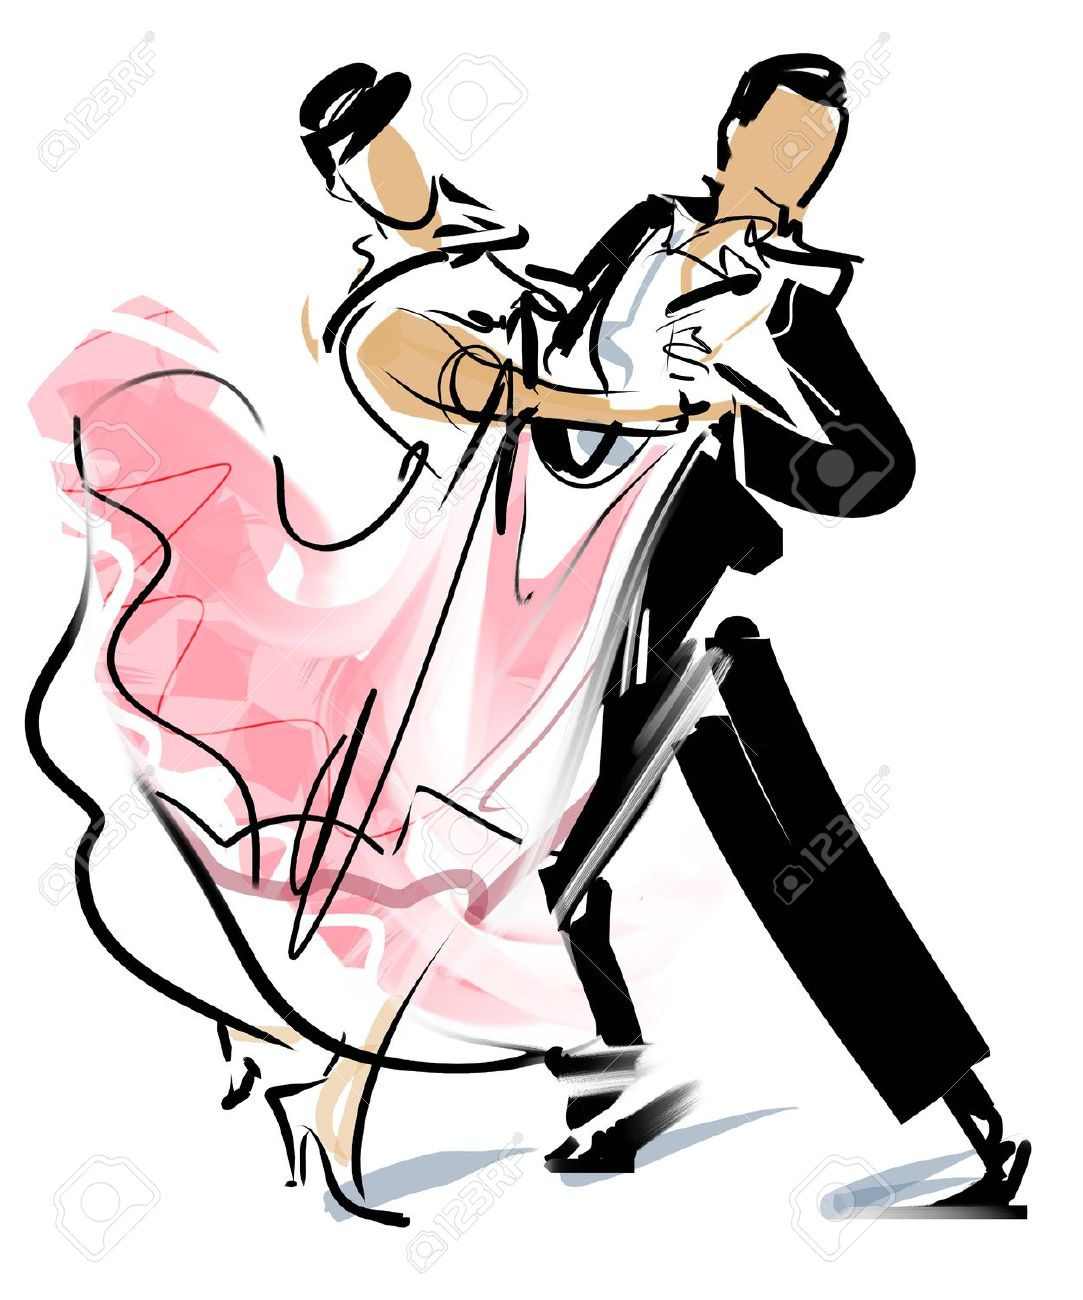 Dancing Couple Clipart.